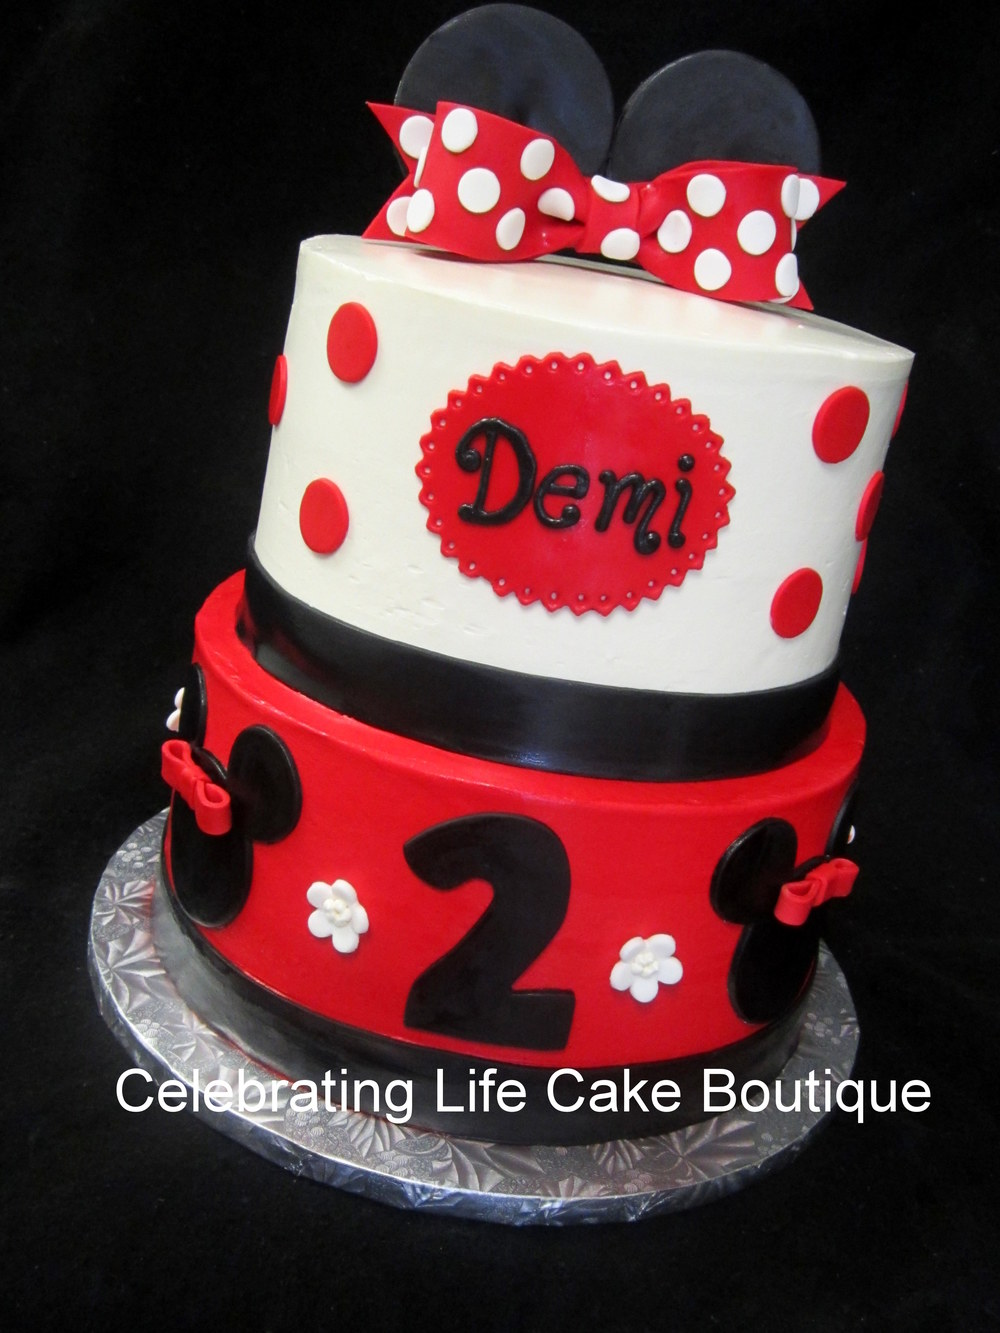 minnie mouse black with red polka dotted bow - Copy - Copy - Copy.jpg